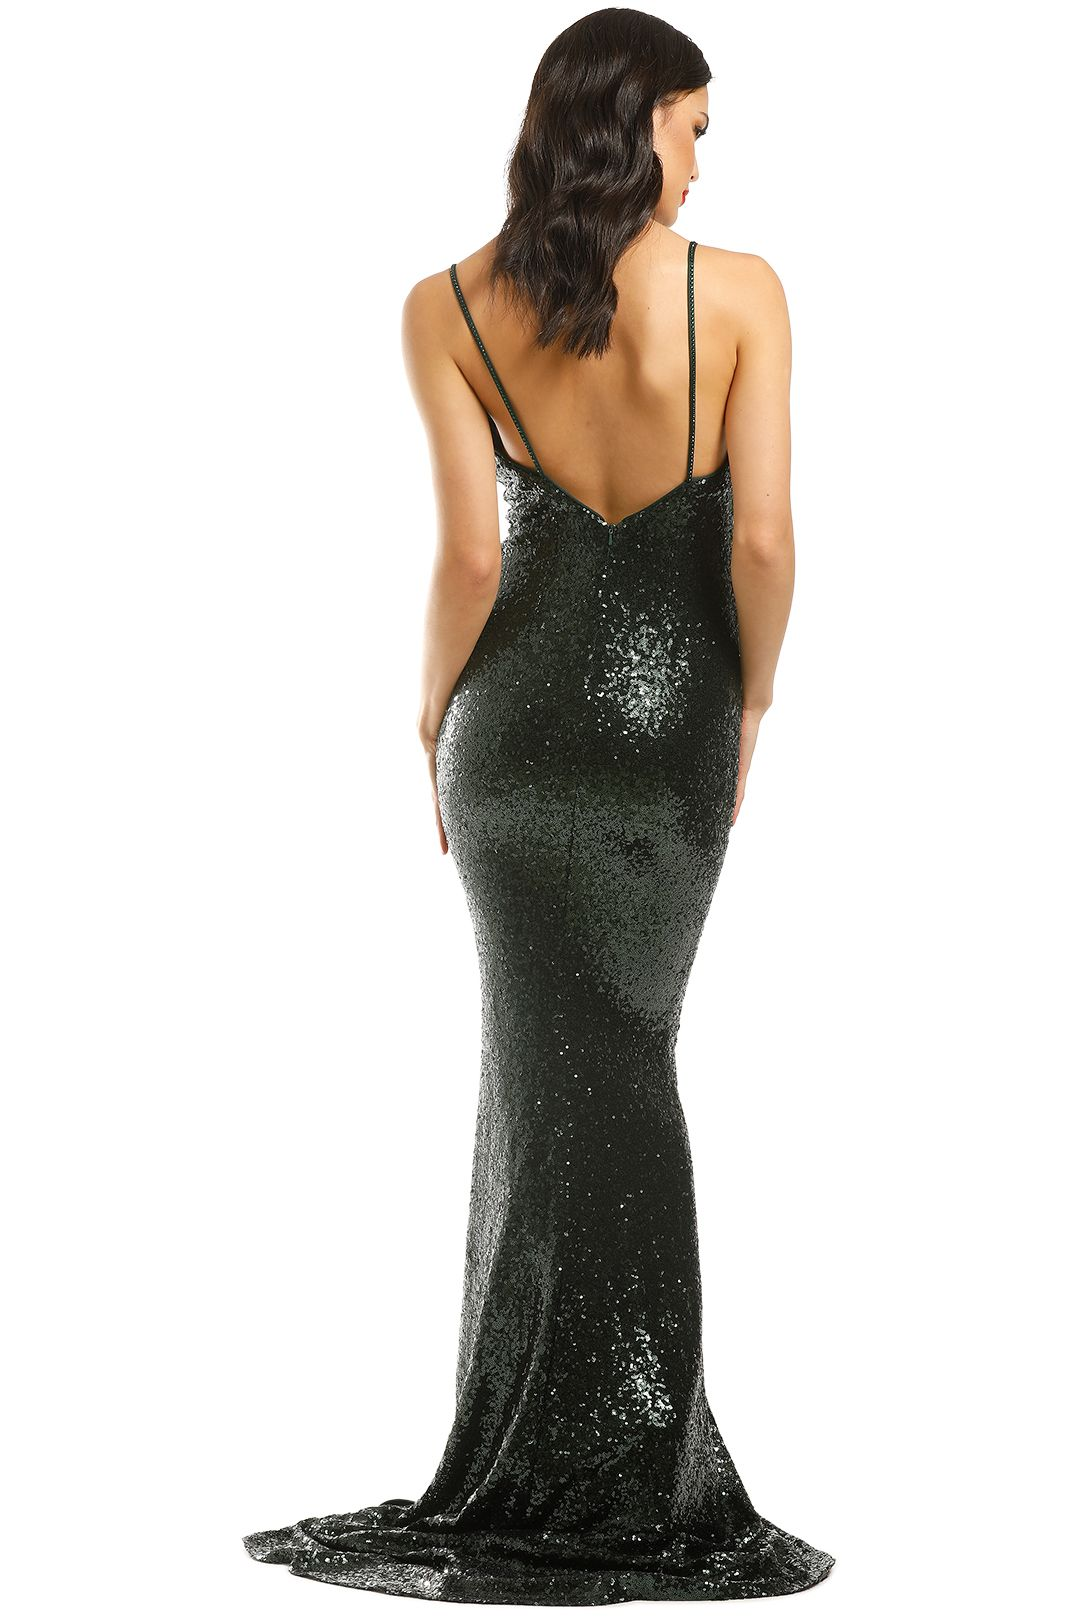 L'amour-Sequin-Plunge-Emerald-Green-Back